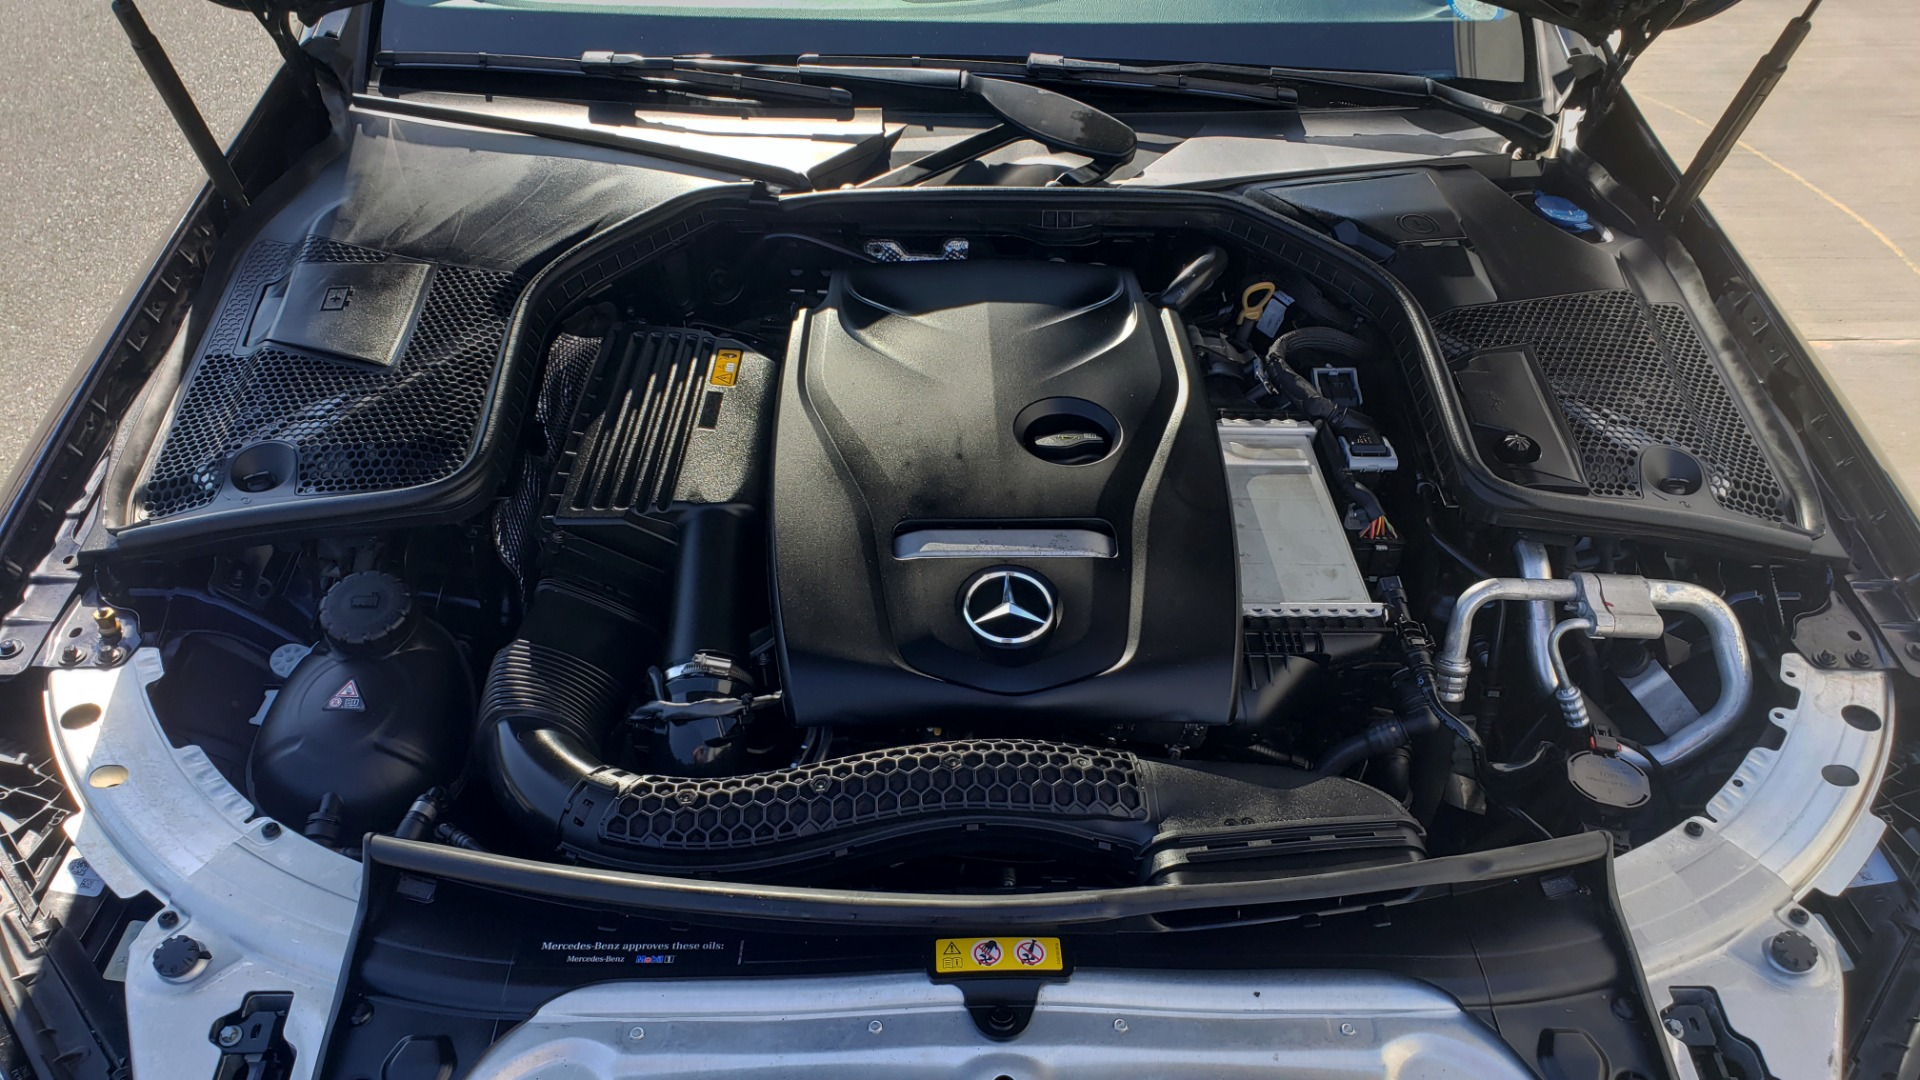 Used 2018 Mercedes-Benz C-CLASS C 300 PREMIUM / SUNROOF / BURMESTER / BSM / REARVIEW for sale $23,995 at Formula Imports in Charlotte NC 28227 11